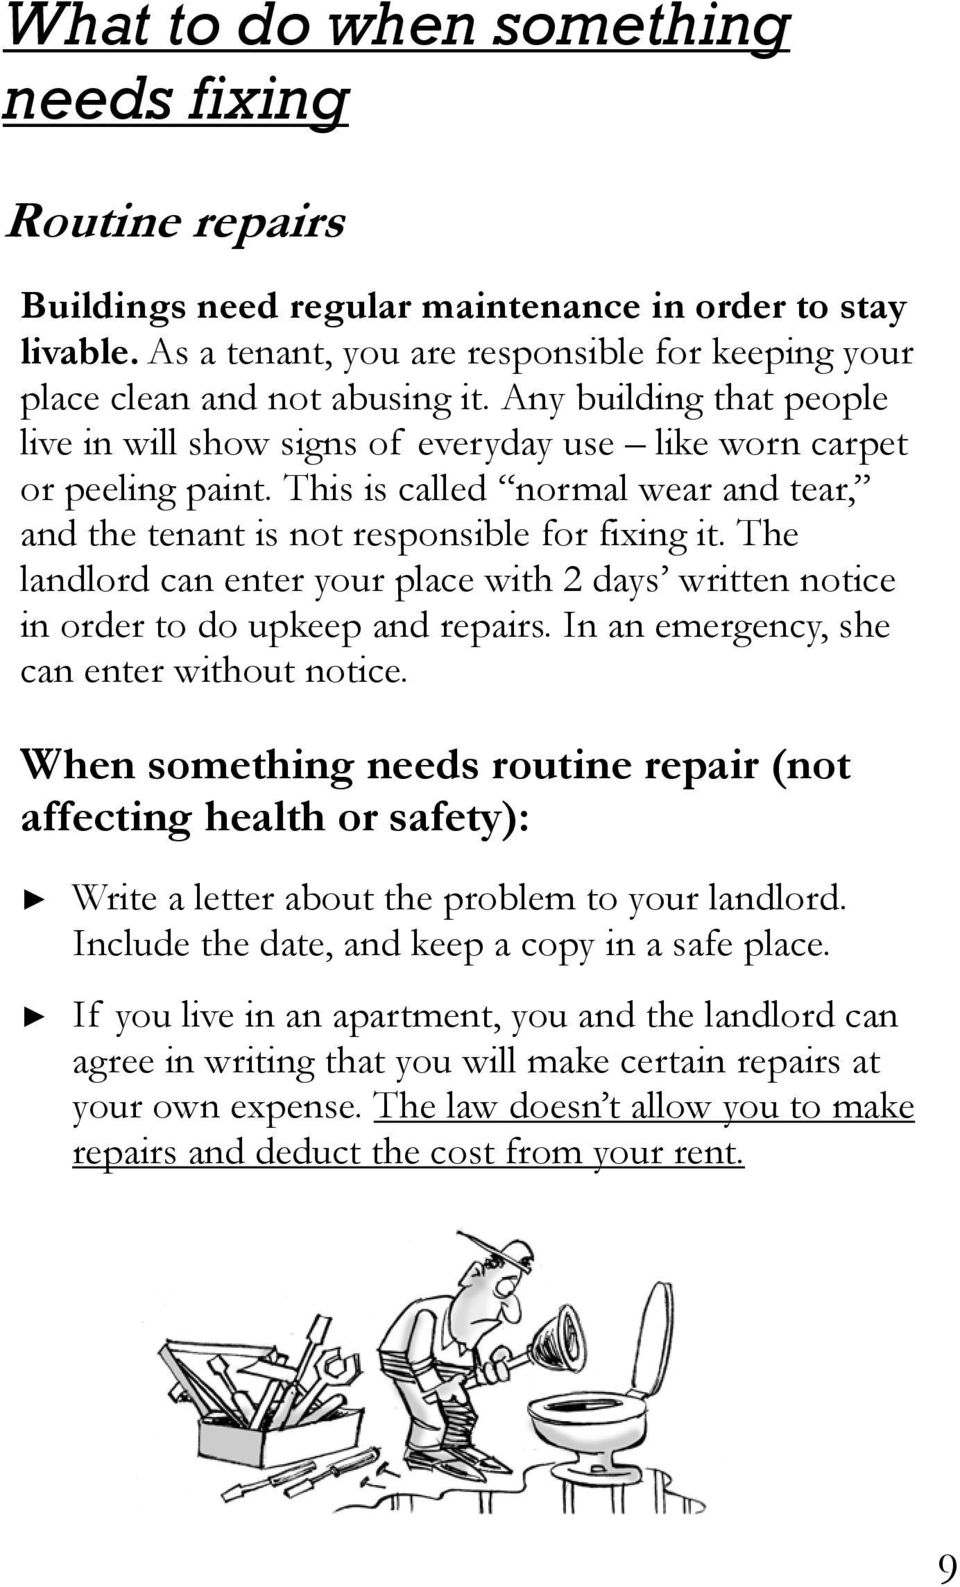 The landlord can enter your place with 2 days written notice in order to do upkeep and repairs. In an emergency, she can enter without notice.